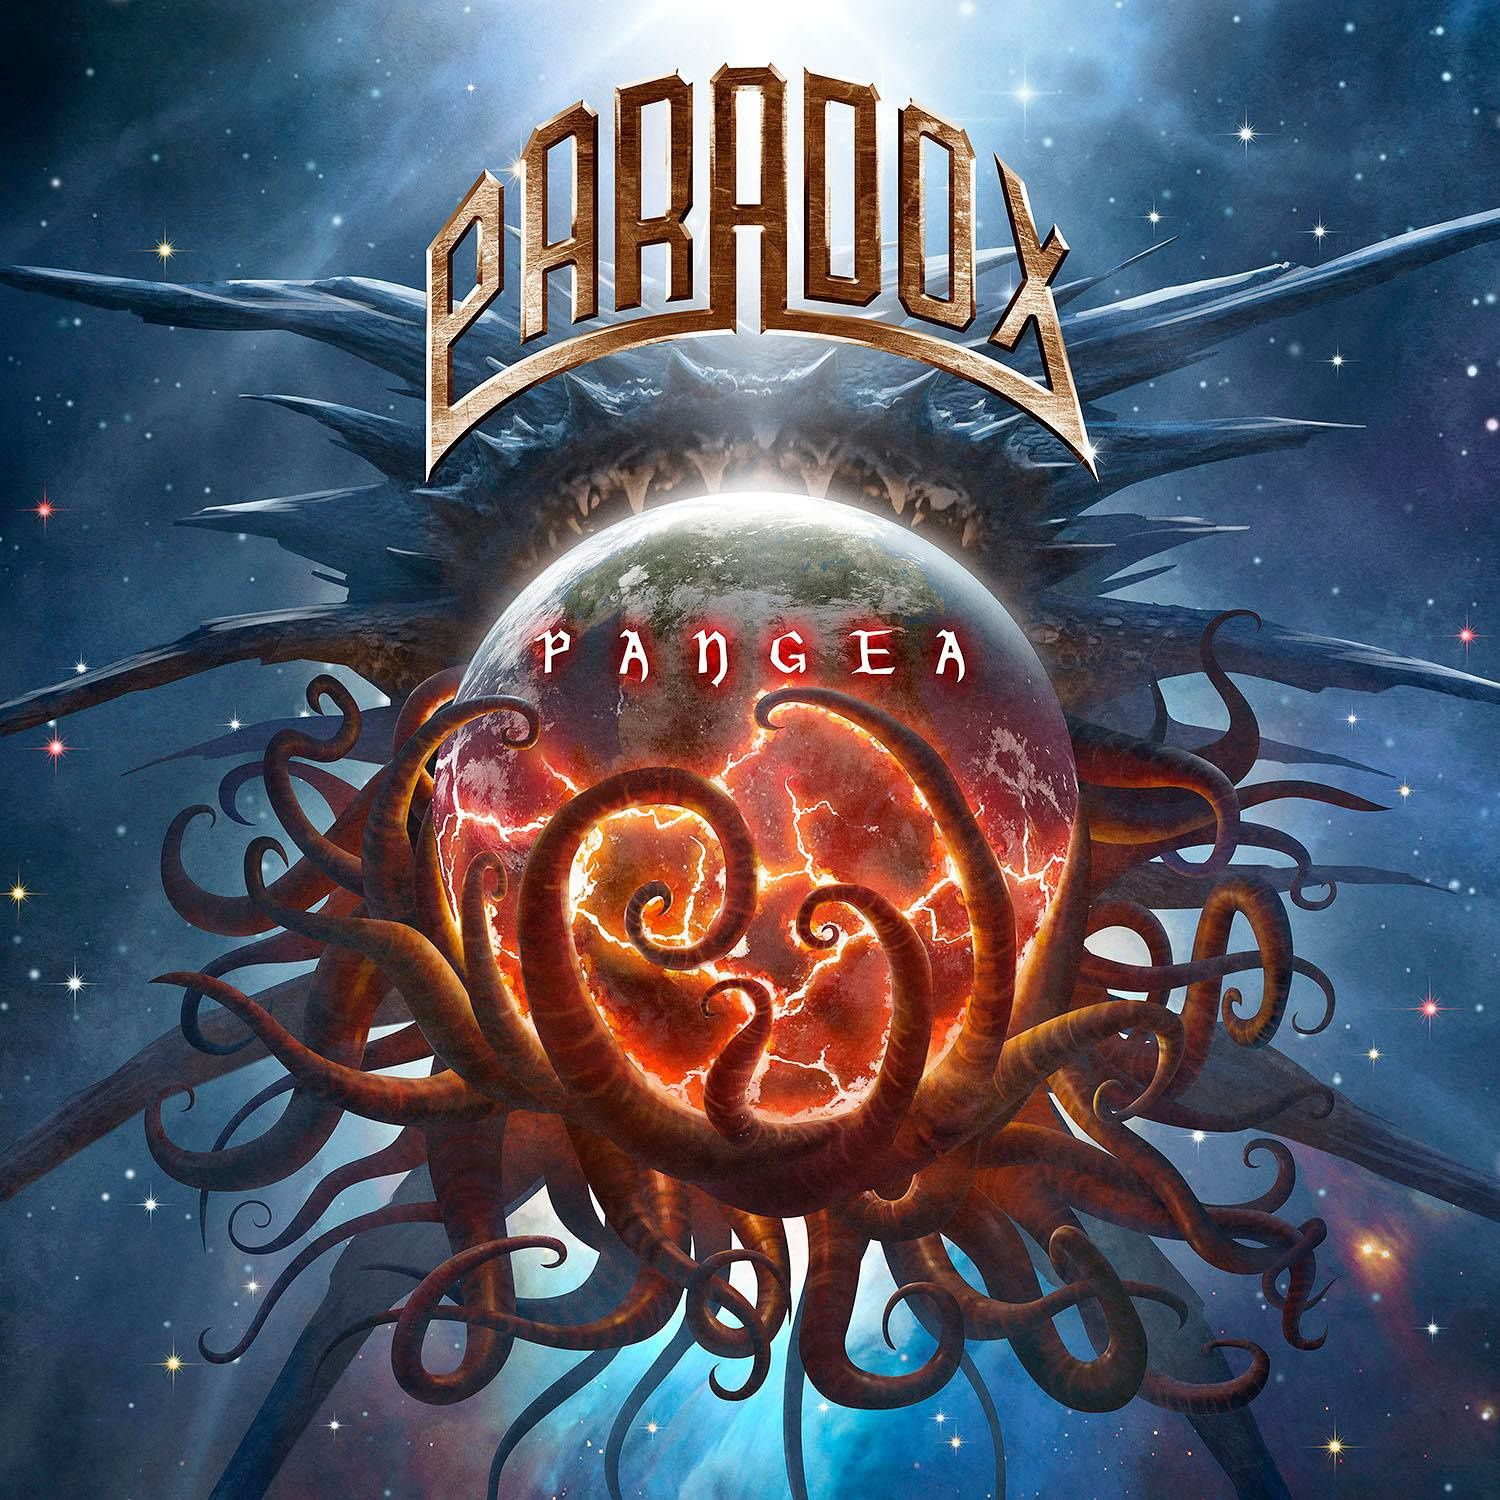 New album from PARADOX